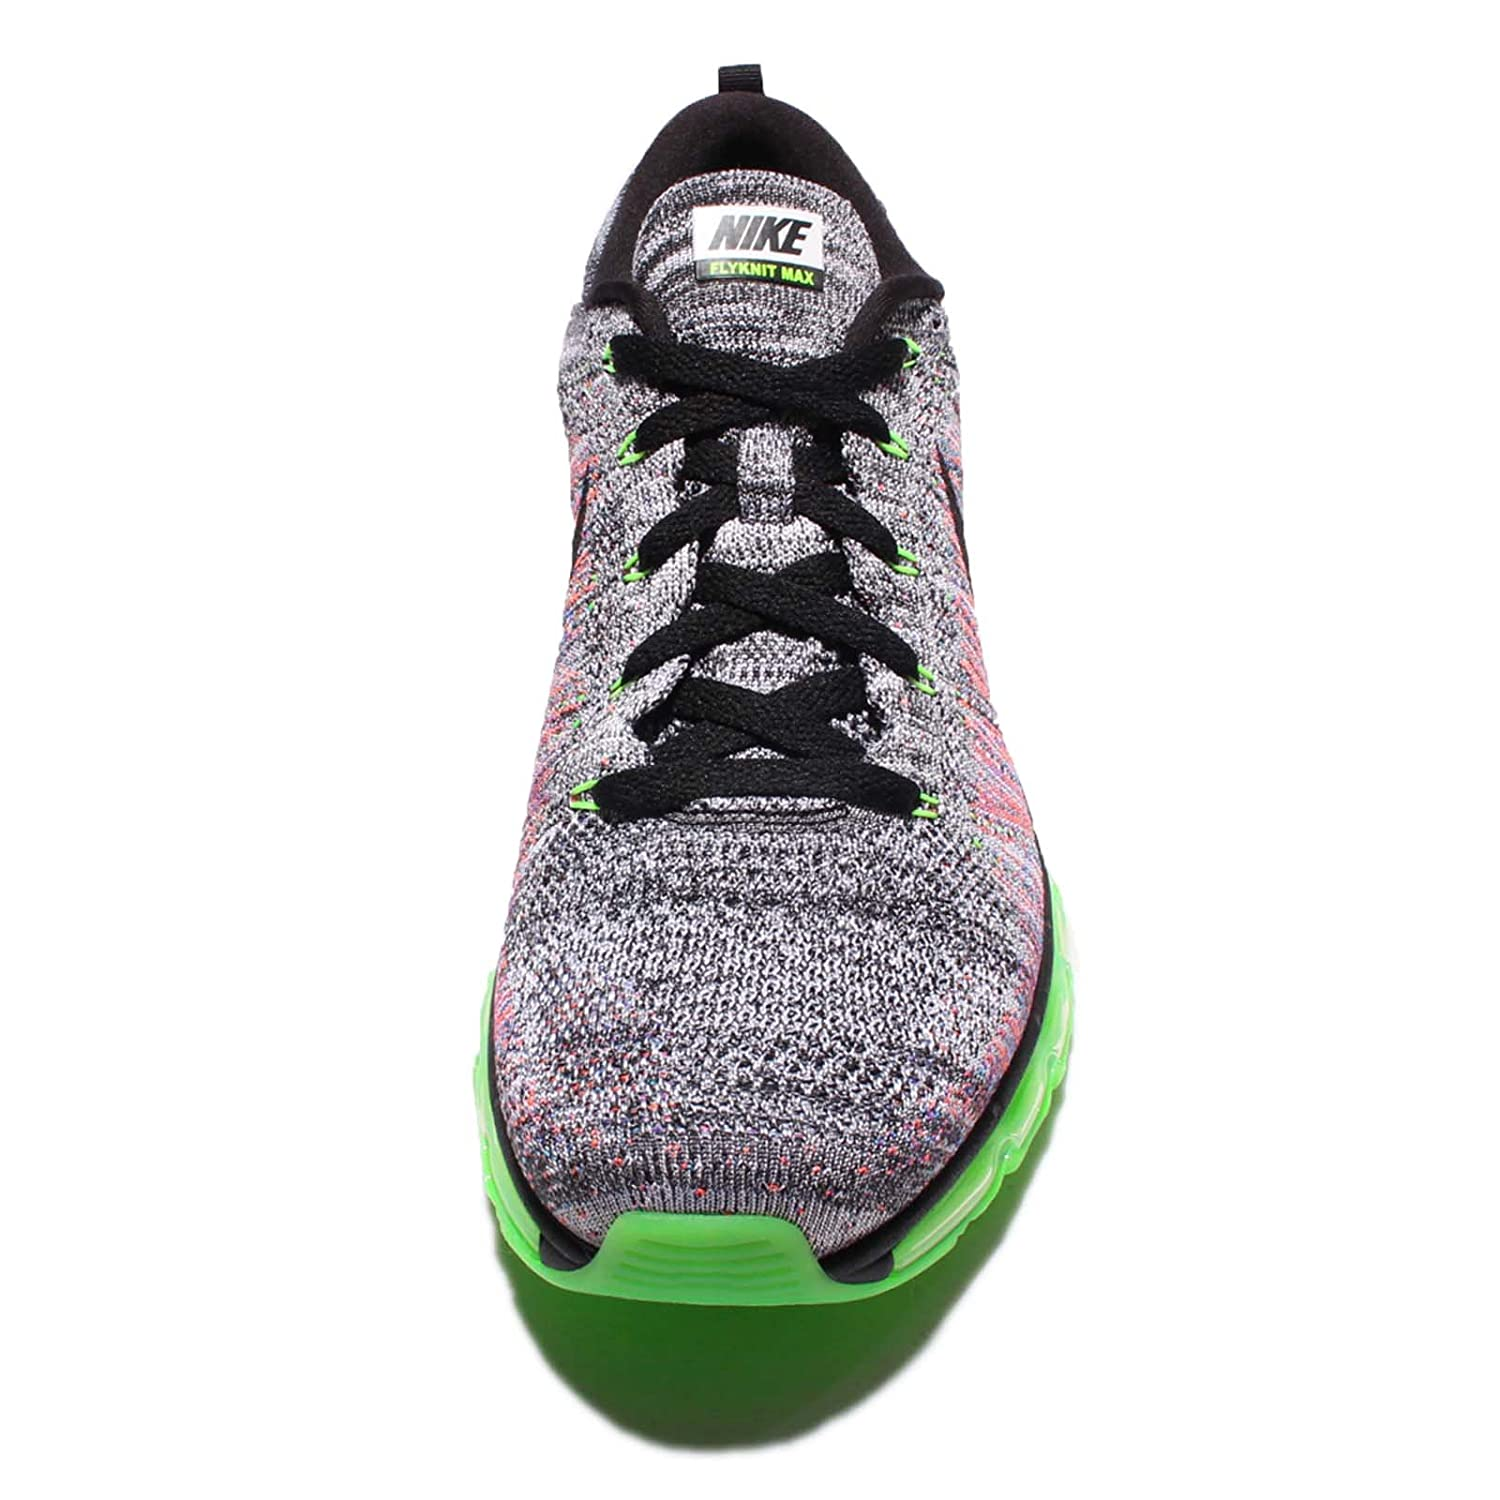 Nike Flyknit Pellicola Frisbee Uktimate Delle Donne Air Max hid2w